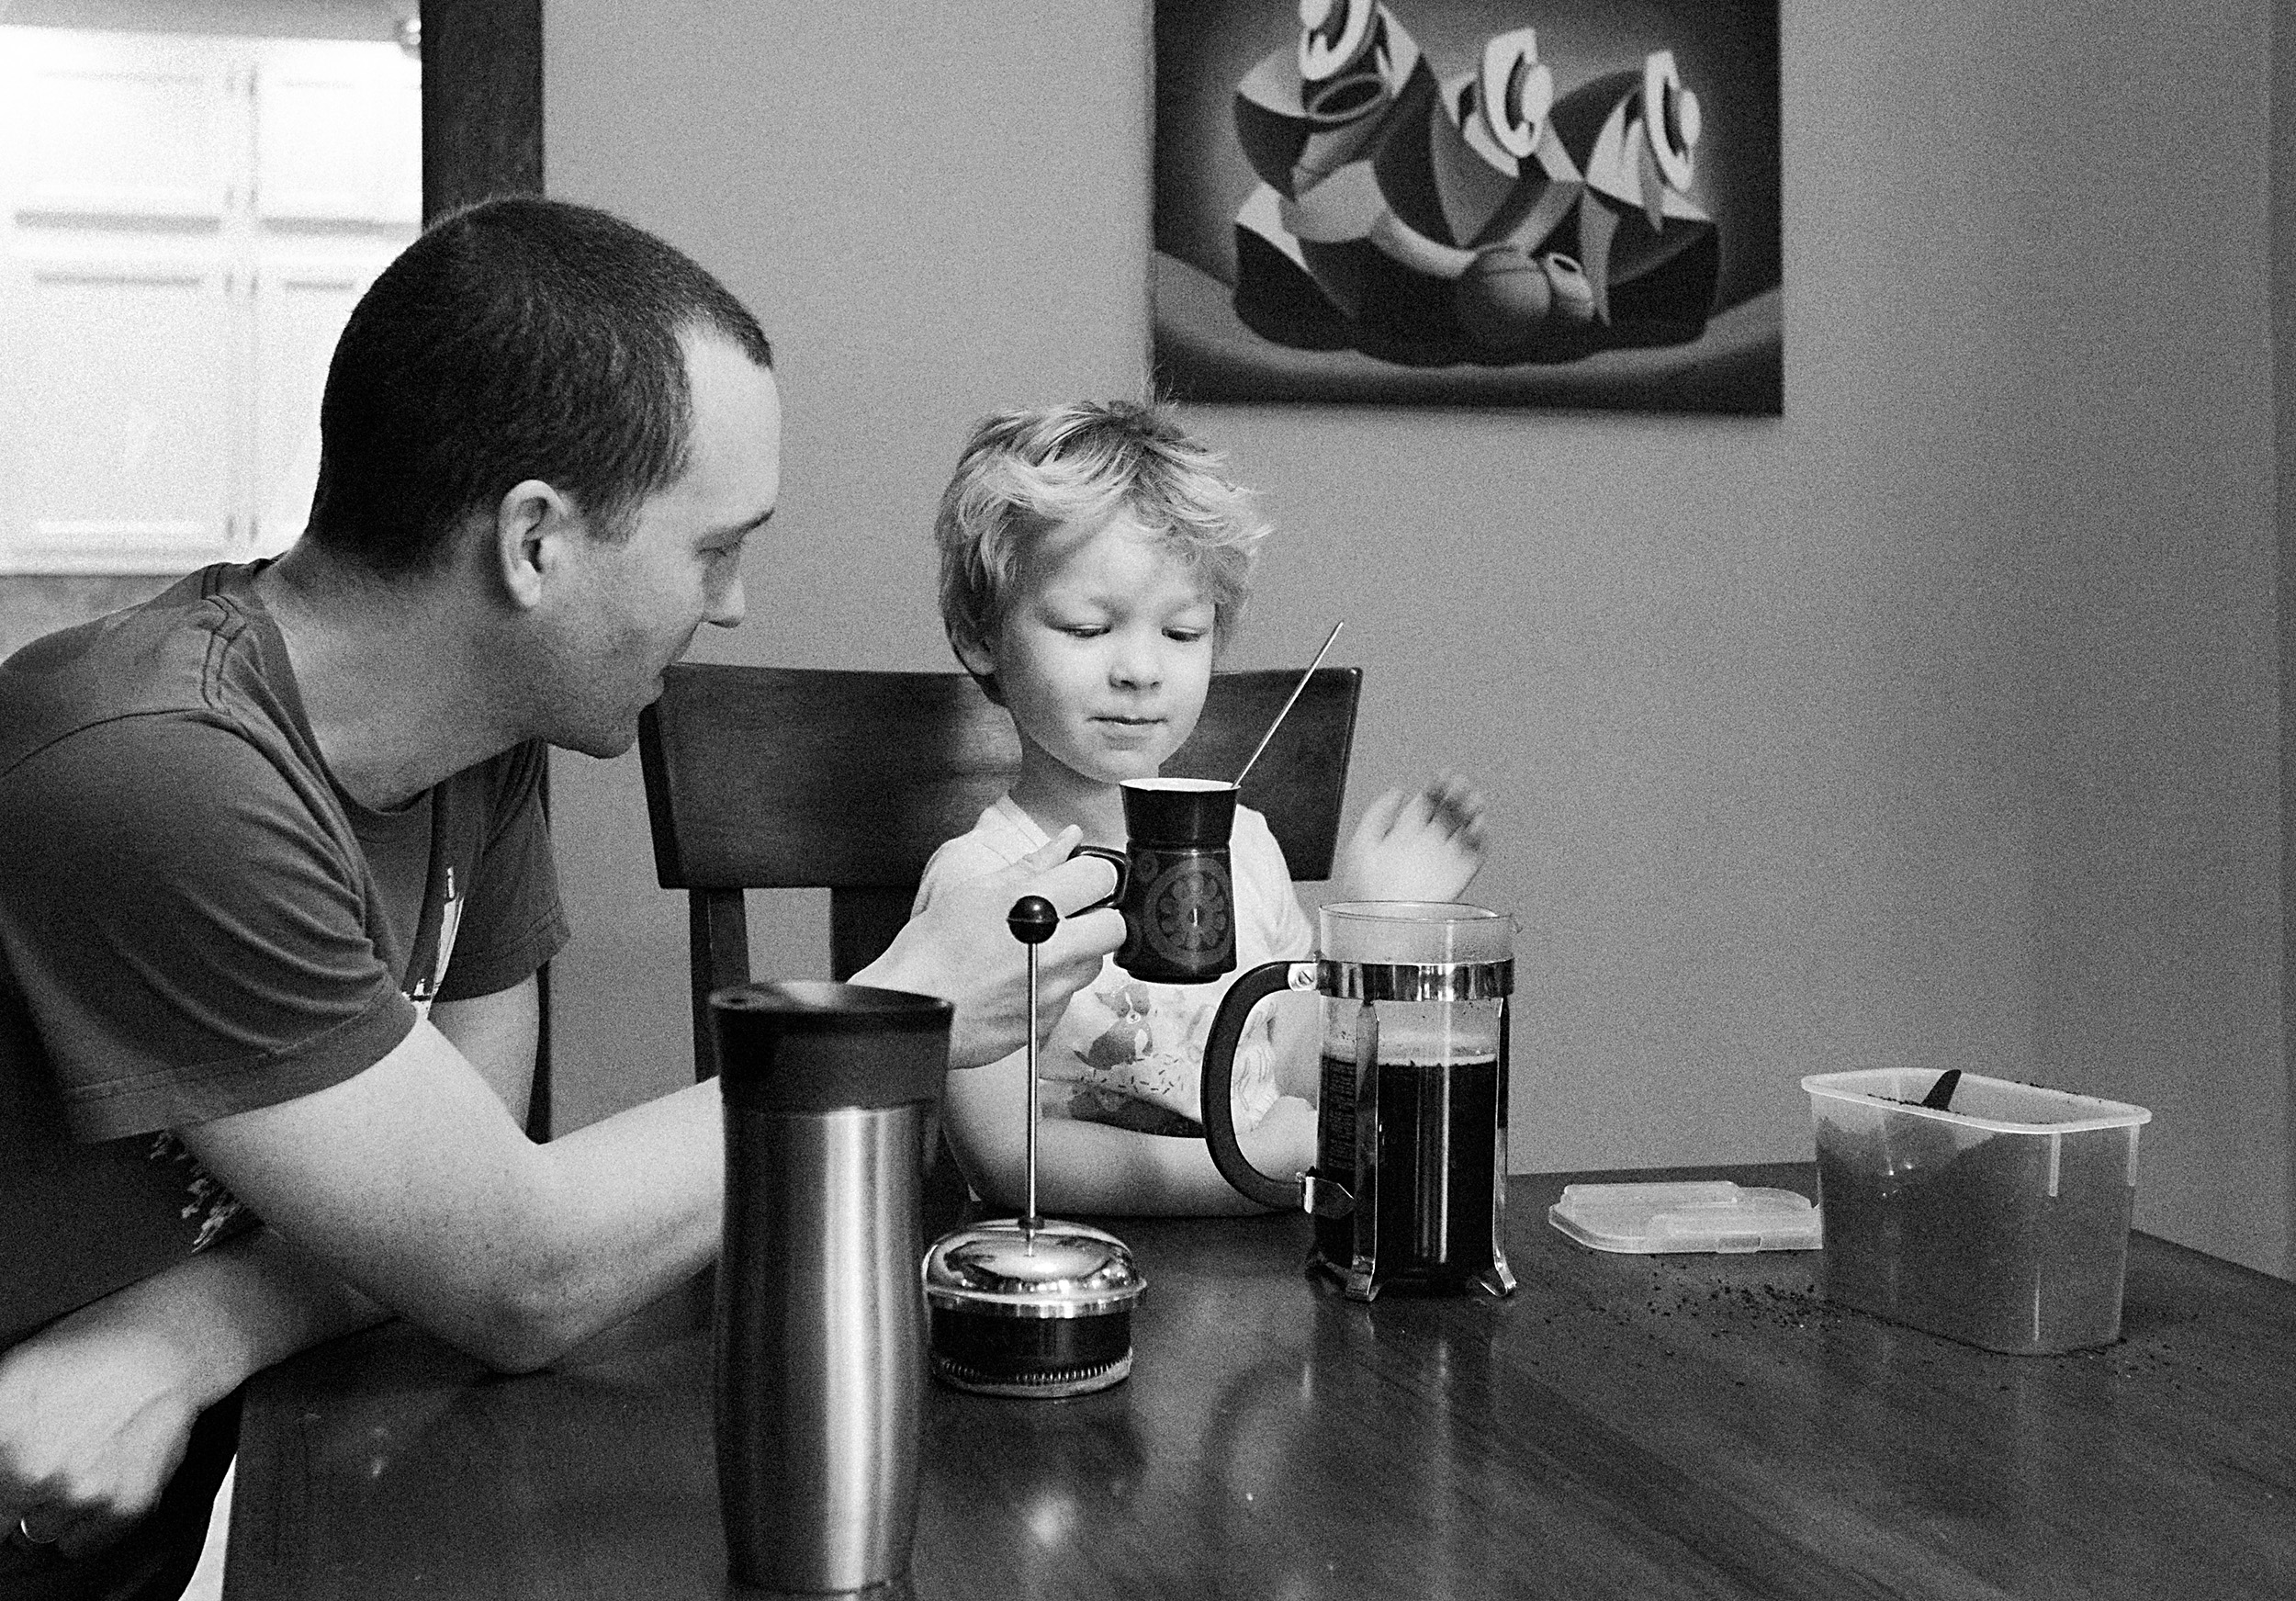 father and son make coffee together